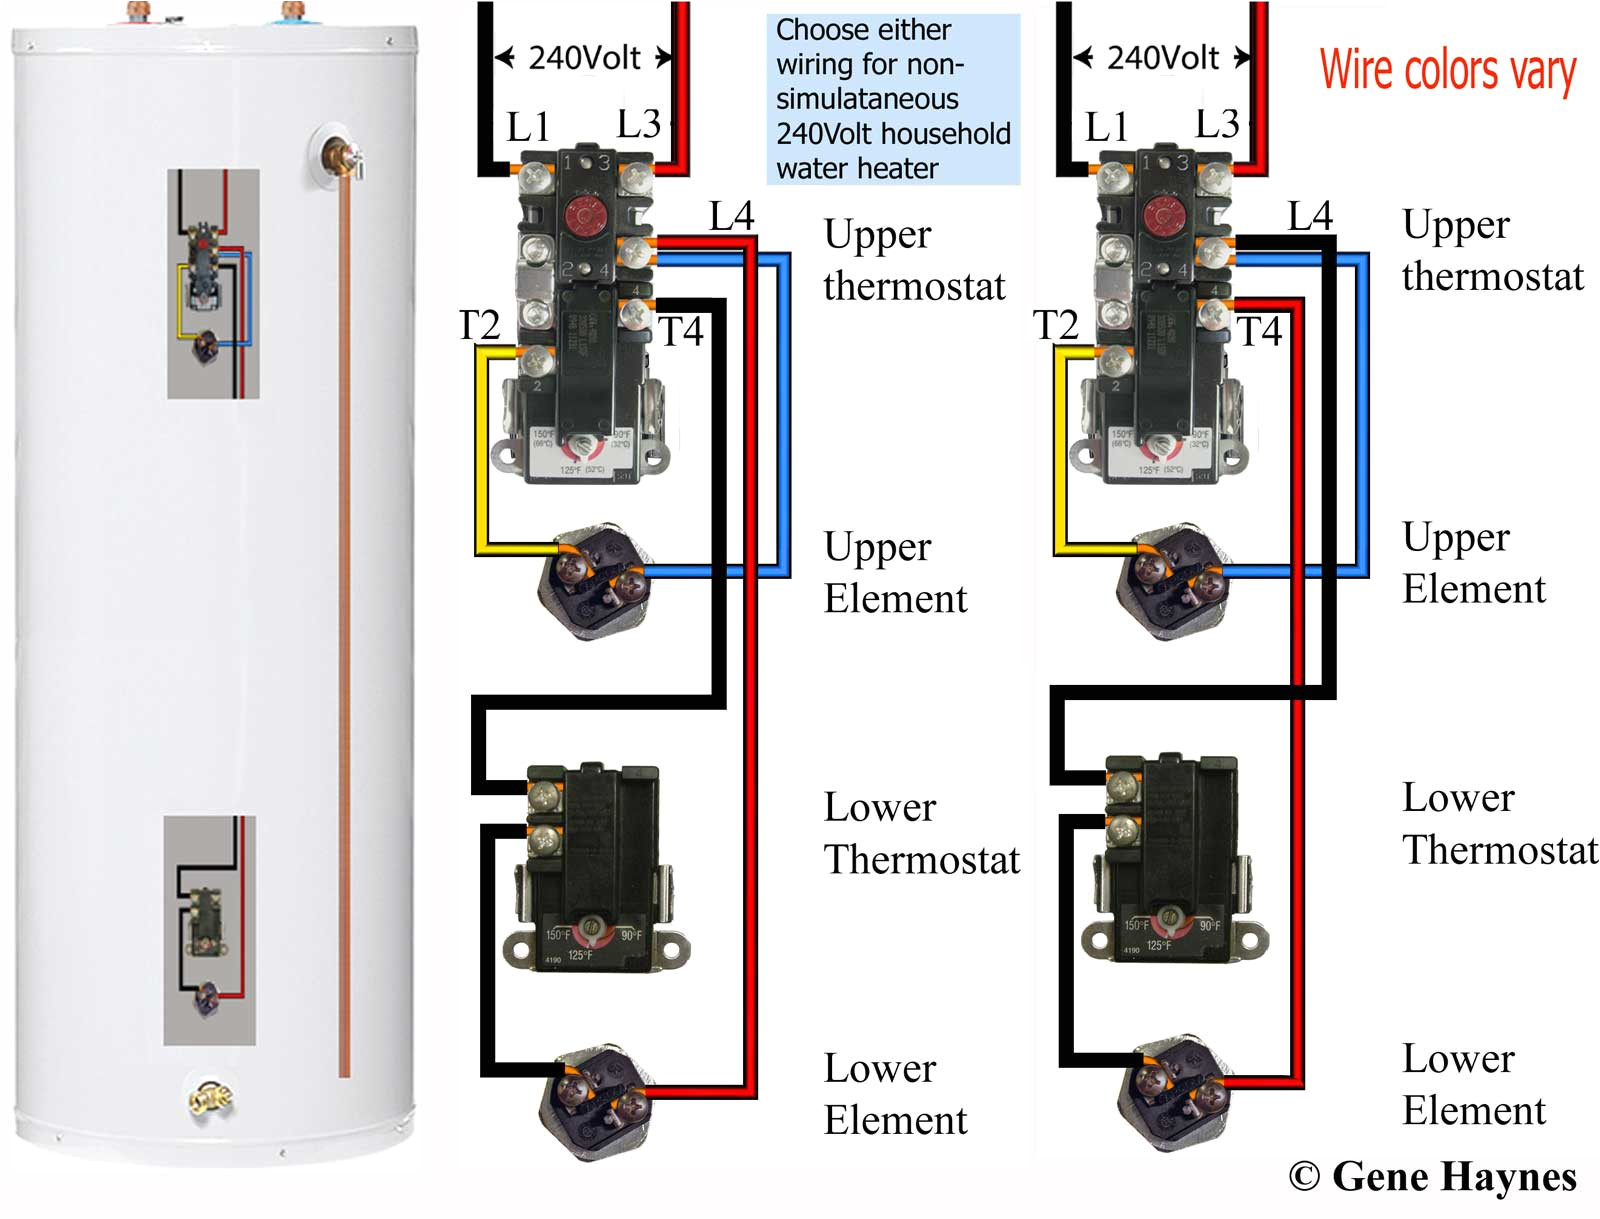 typical hot water heater wiring diagram all wiring diagramhow to troubleshoot electric water heater hot water